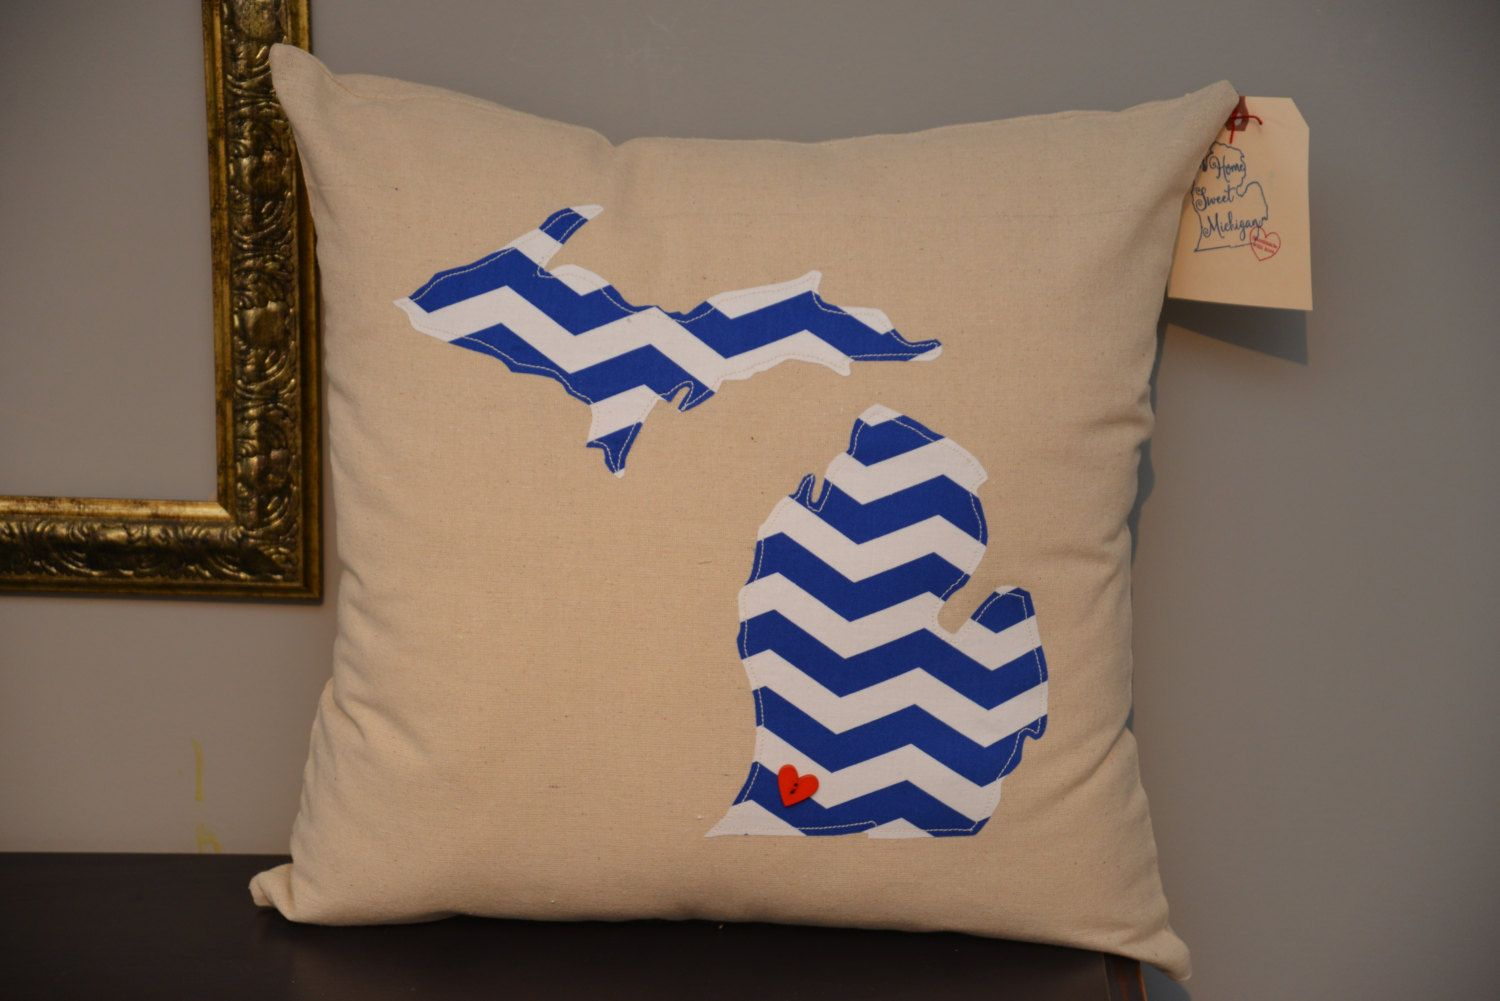 Browse unique items from HomeSweetMichigan on Etsy, a global marketplace of handmade, vintage and creative goods.  Michigan Pillows - 18x18 - Custom Pillows - Handmade Pillows - State Pillows - Pillow Covers - MI Pillows - Accent Pillows - Throw Pillows